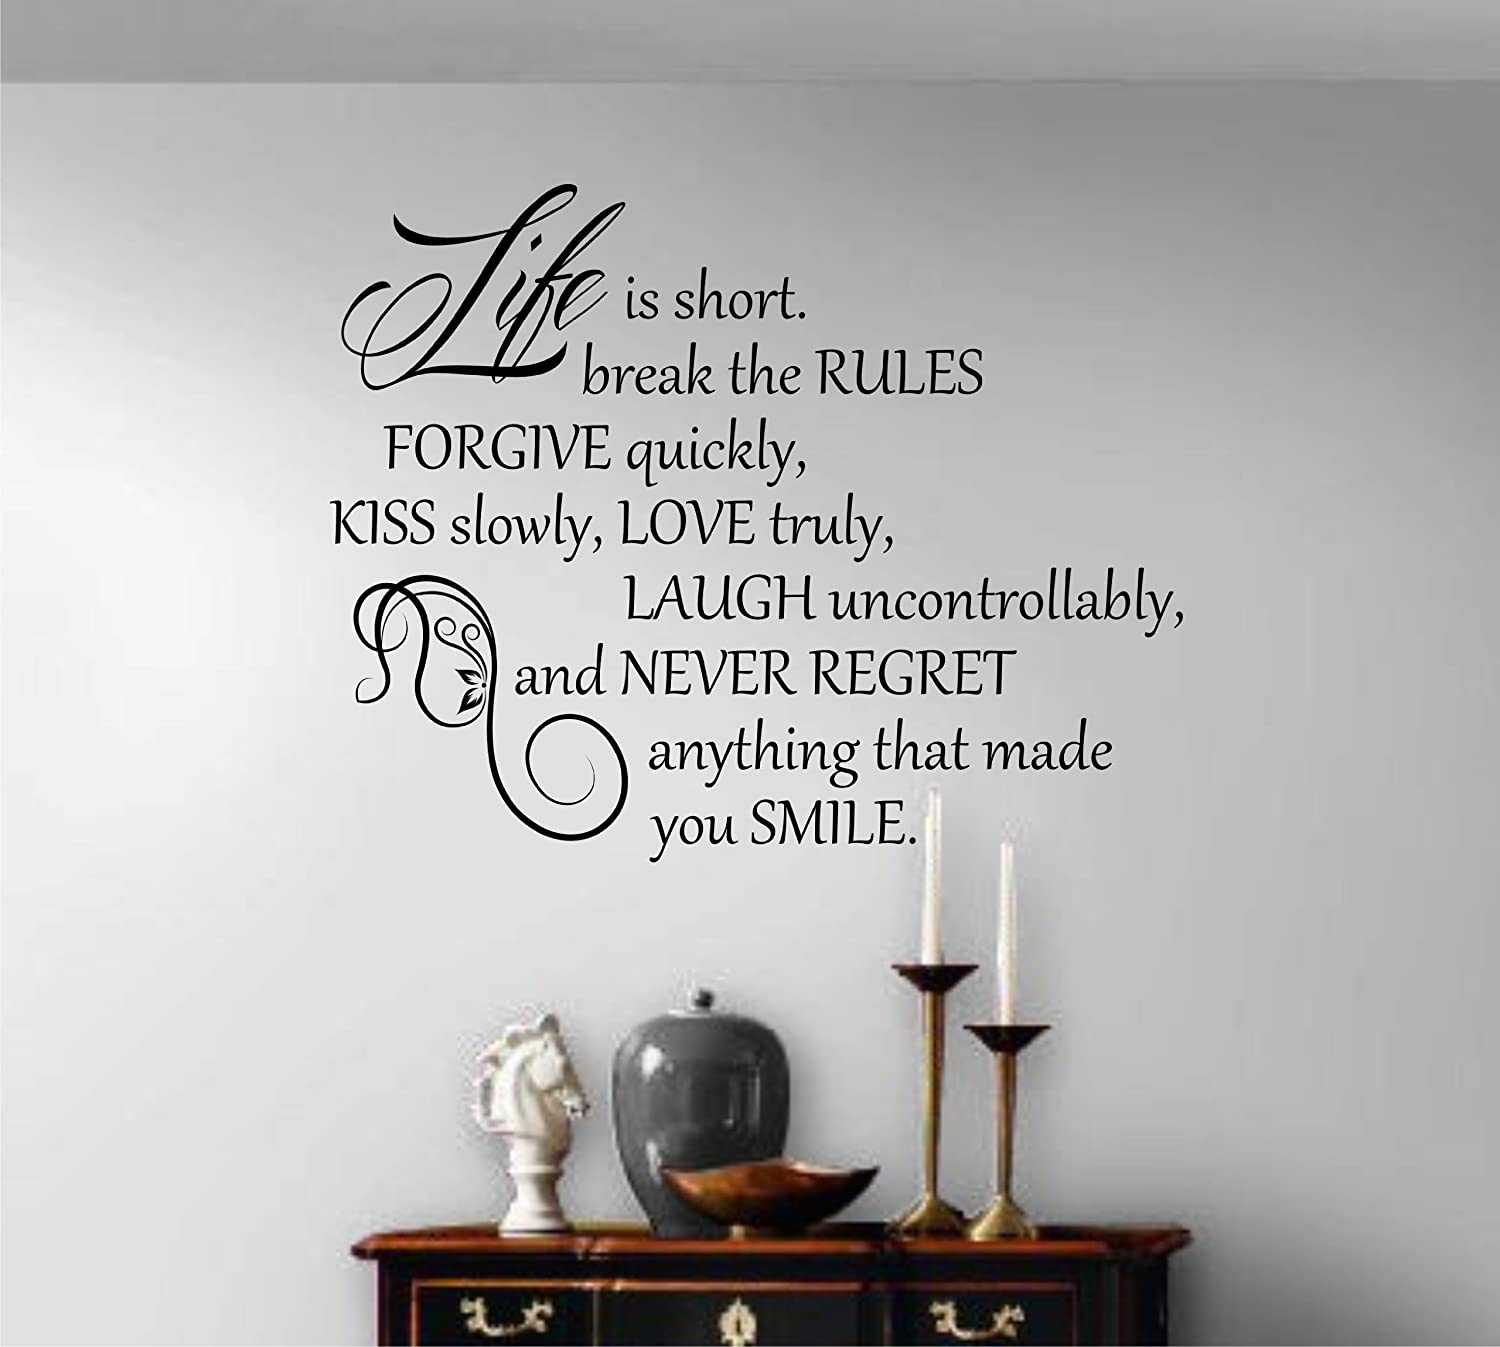 Vinyl Wall Art Quotes   Wall Sticker Decal Words   LARGE SIZE   BLACK  (Black): Amazon.co.uk: Kitchen U0026 Home